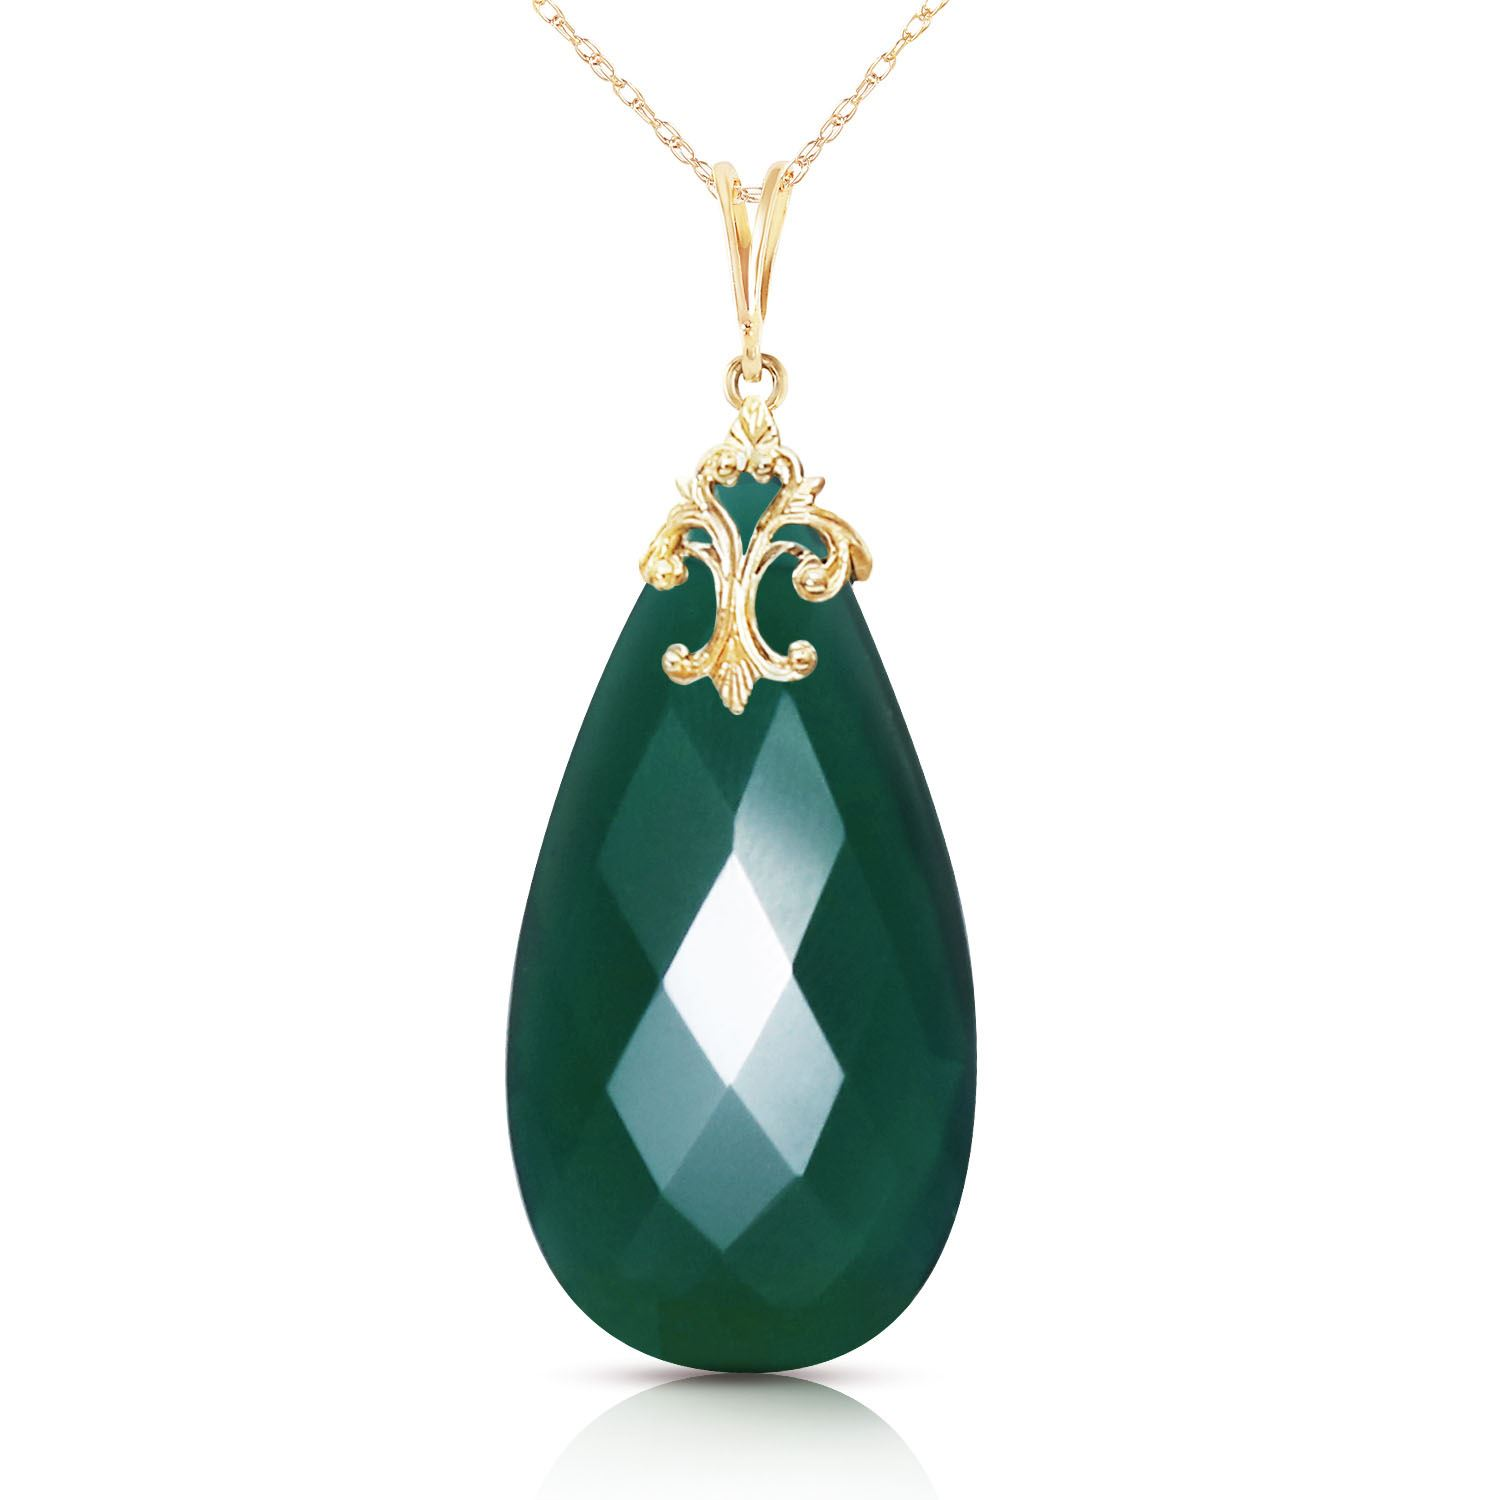 ALARRI 14K Solid Gold Necklace with Briolette 31x16 mm Deep Green Chalcedony with 18 Inch Chain Length. by ALARRI